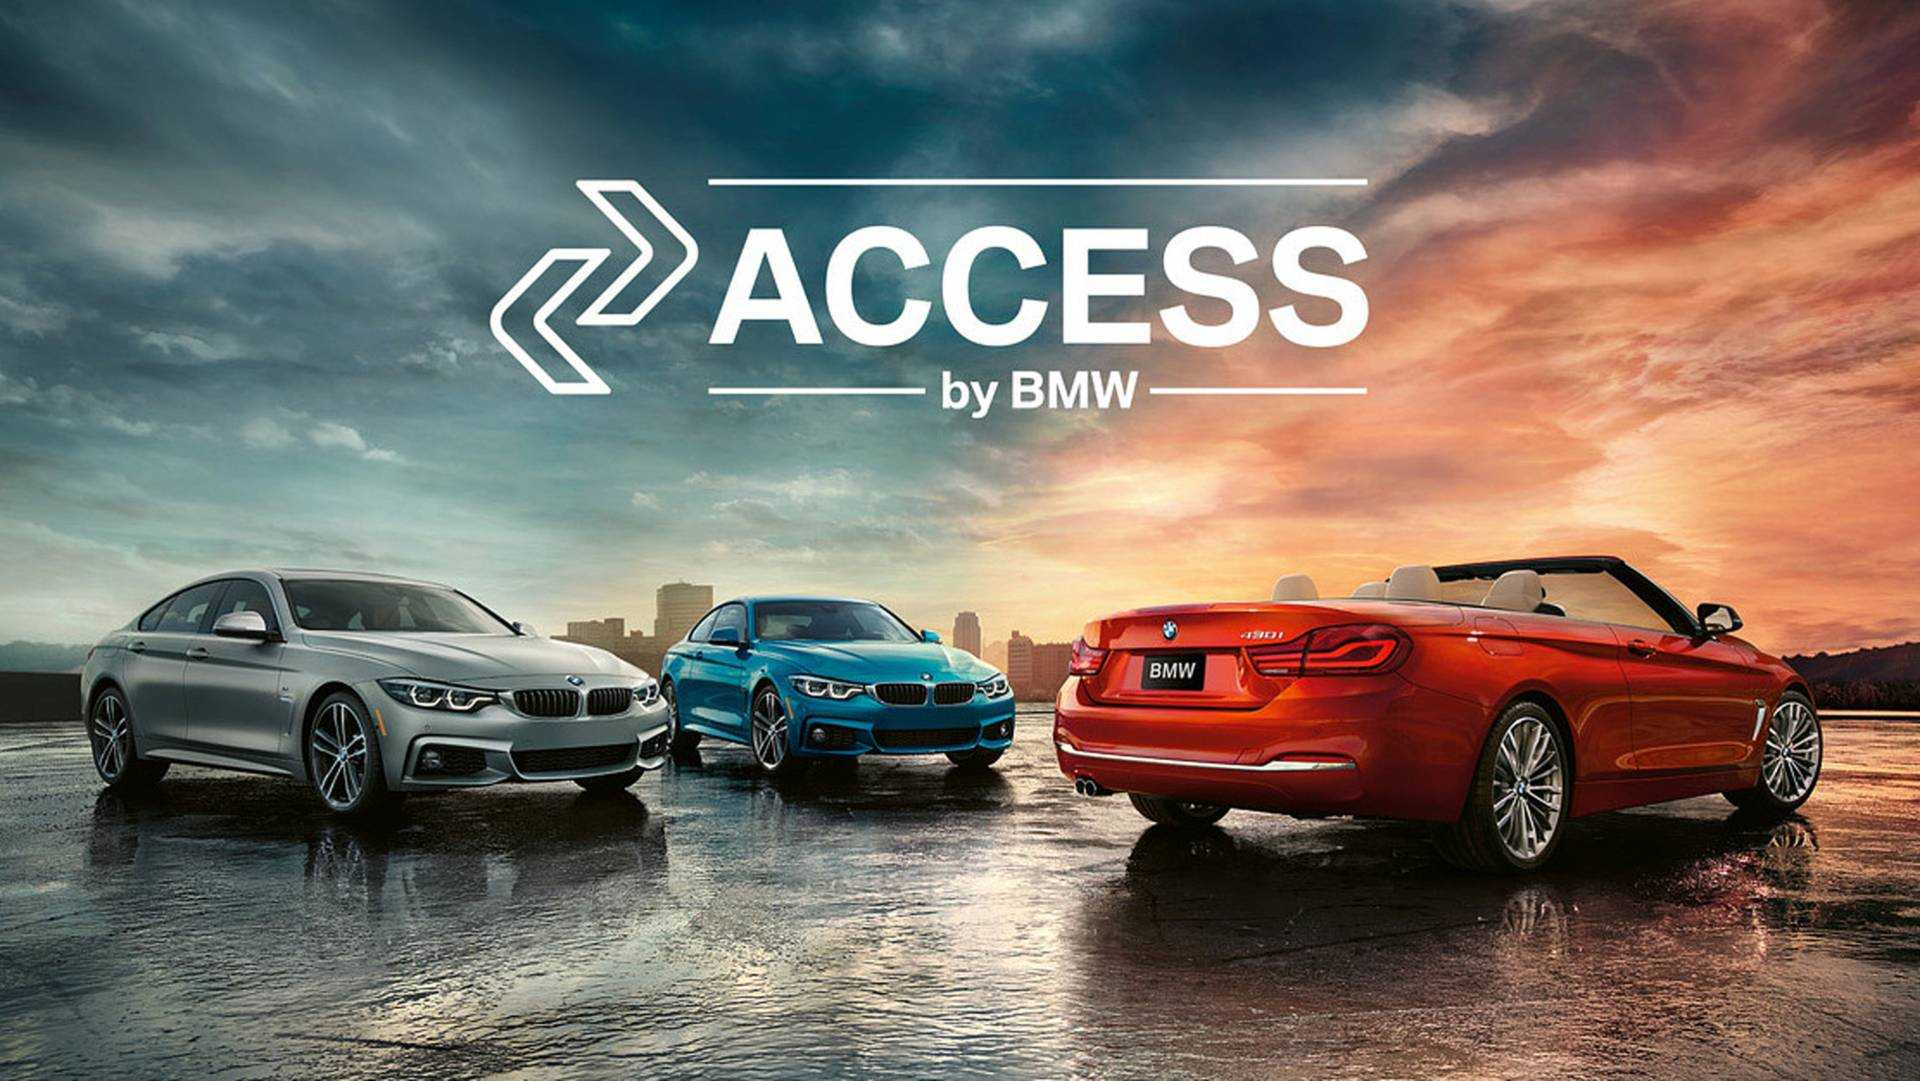 BMW is Planning to Adopt Car as a Service with Subscription Model for Specific Features